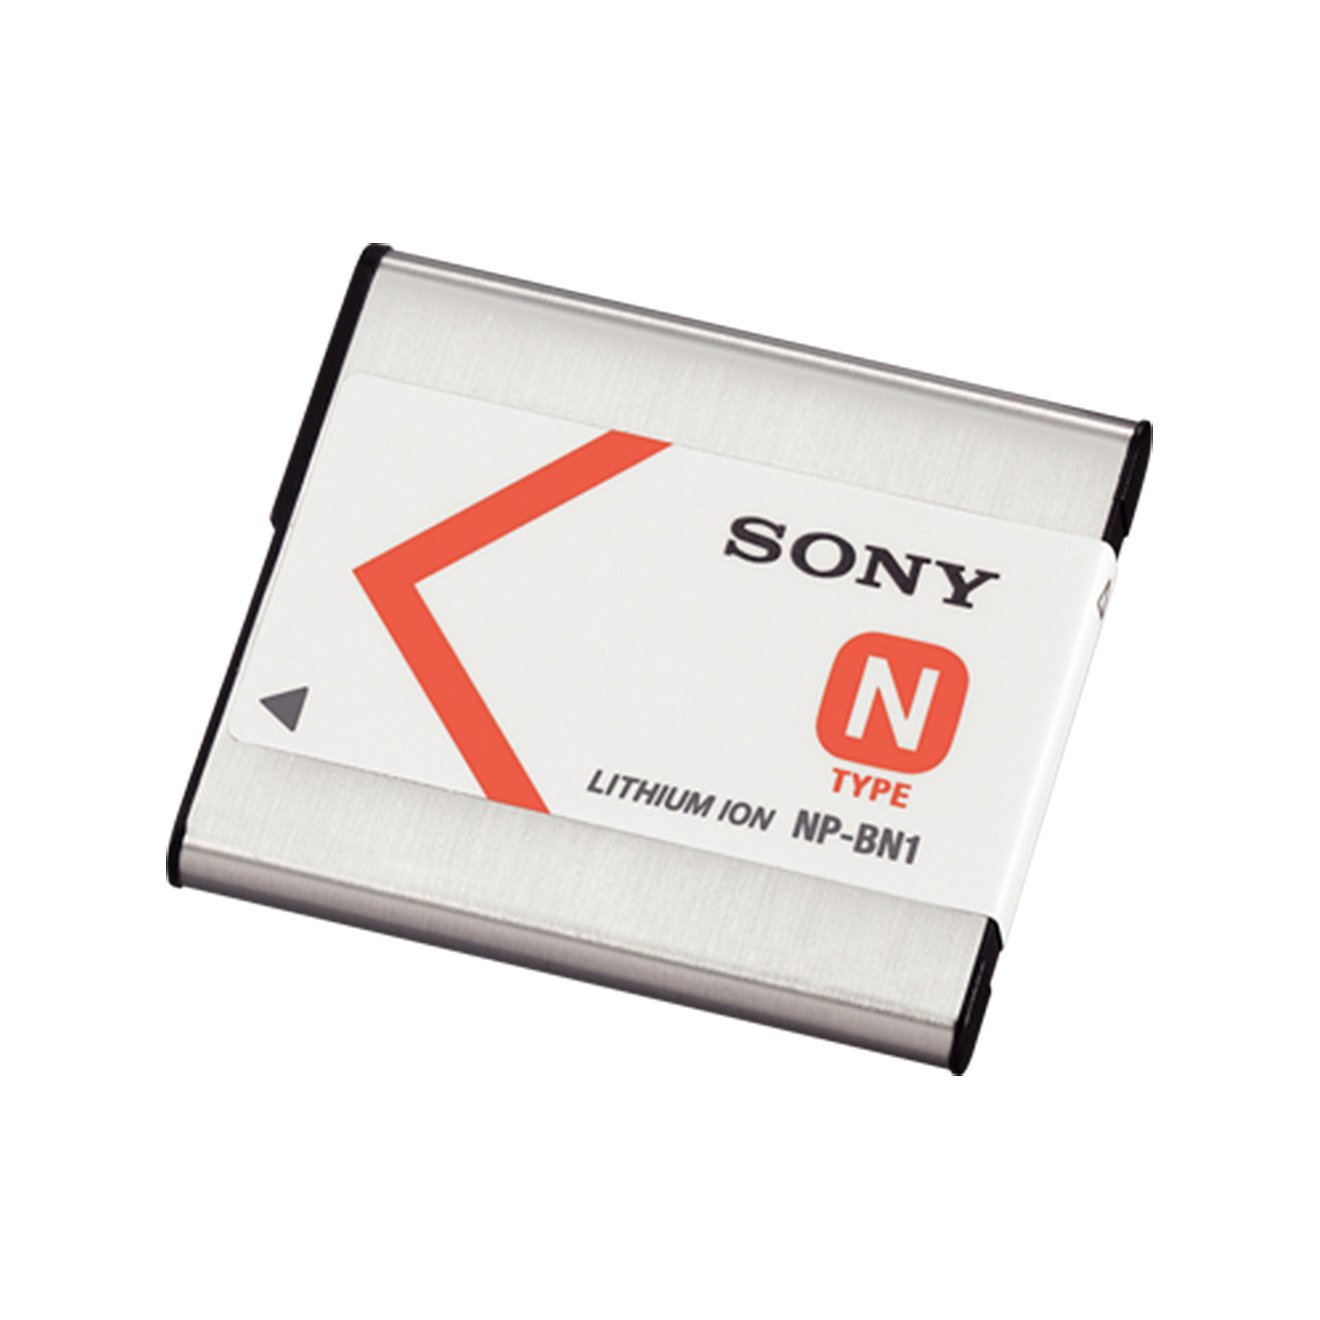 Discover the bn1 rechargeable battery from sony & explore all the batteries & chargers features. 946. Facebook · twitter · where to buy.